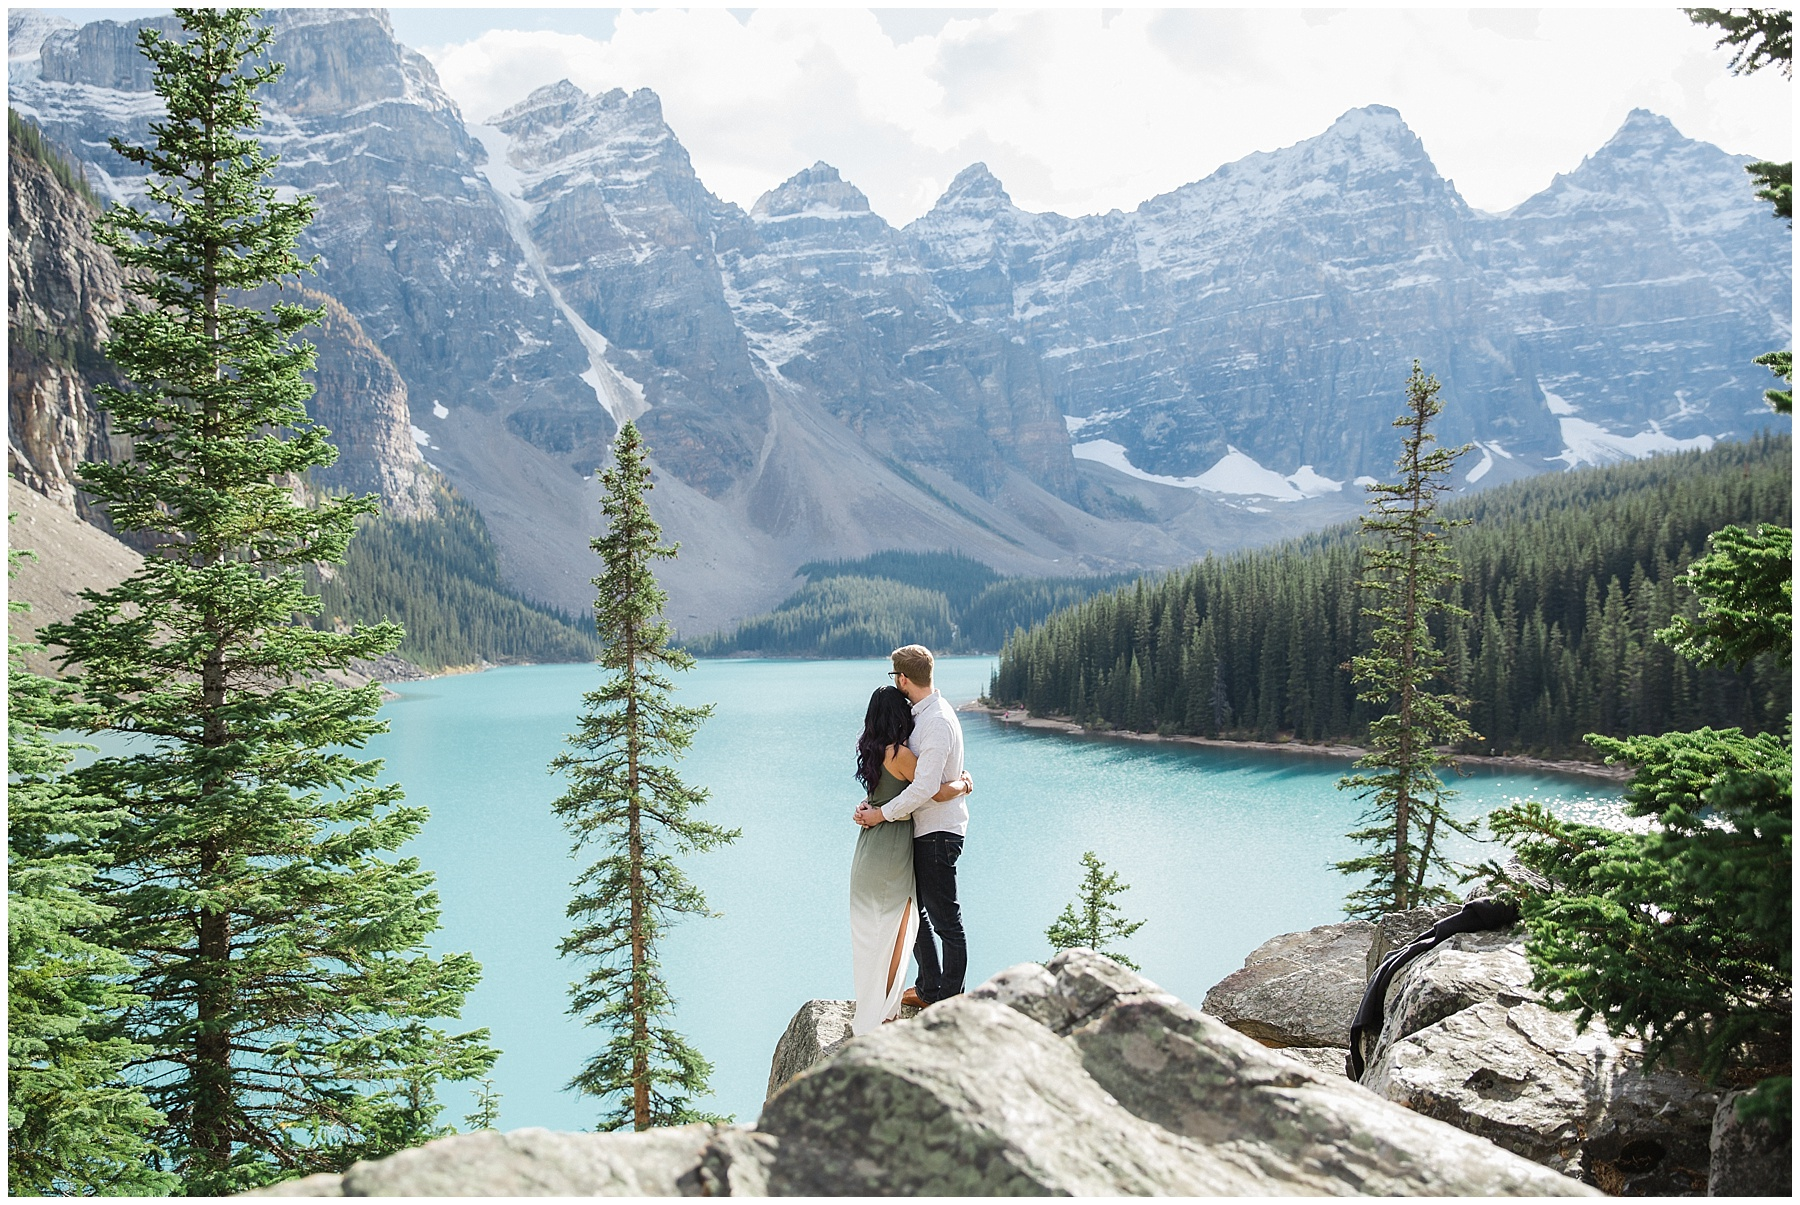 Lake_Moraine_Engagement_Photography_JandC_12_blog.jpg